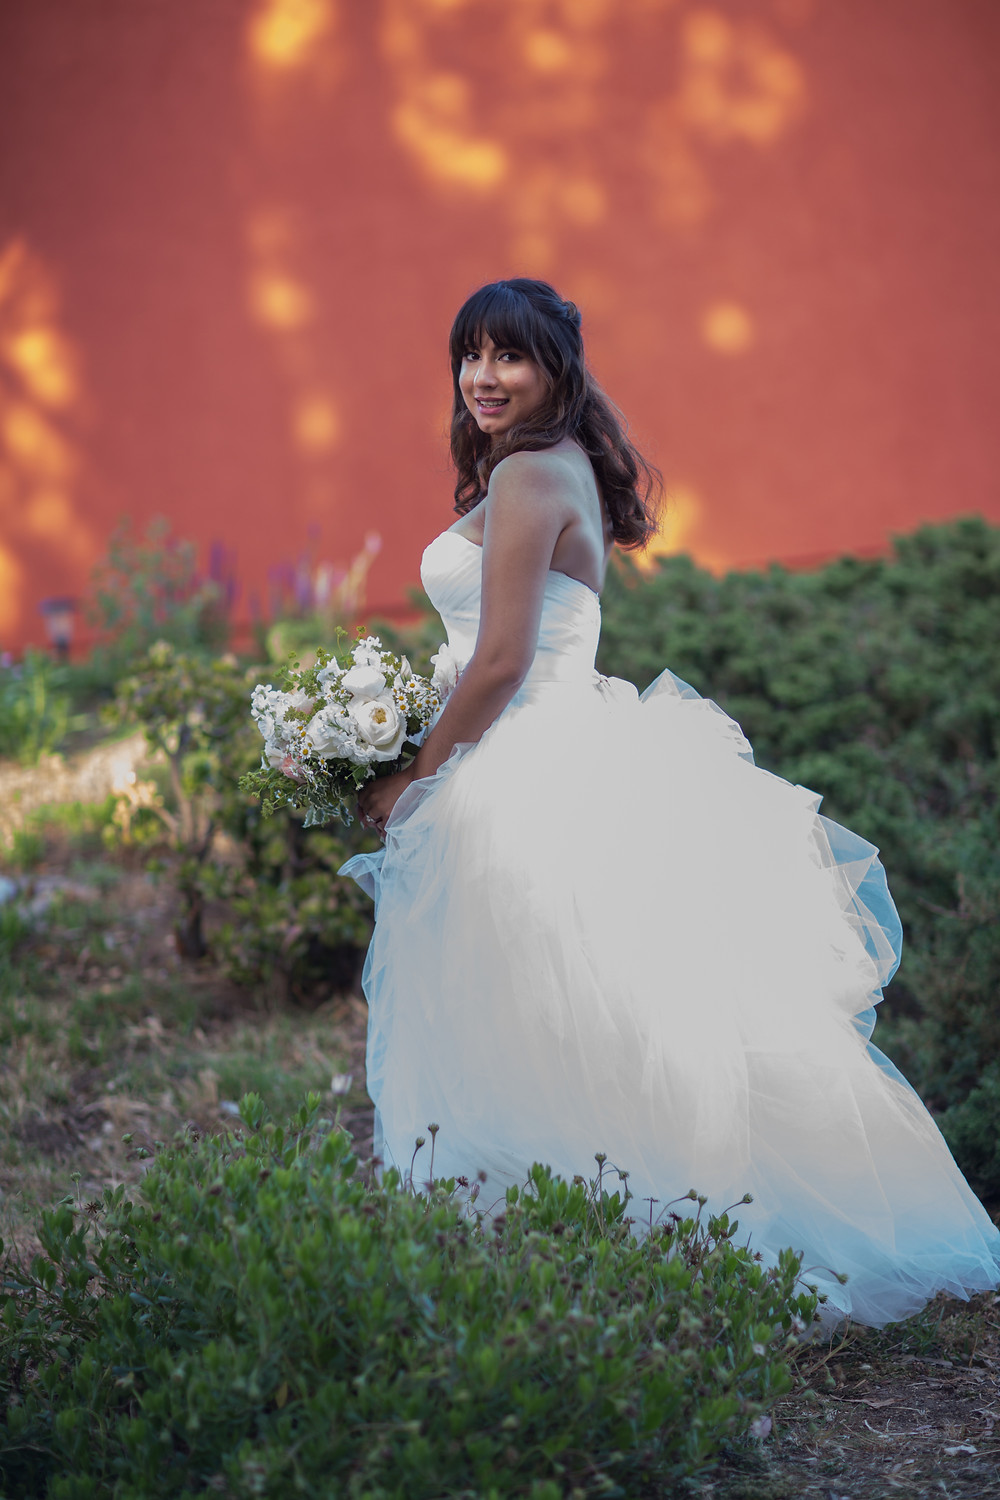 The light filtering through the trees onto the orange wall created a perfect happy background to this happy bride.